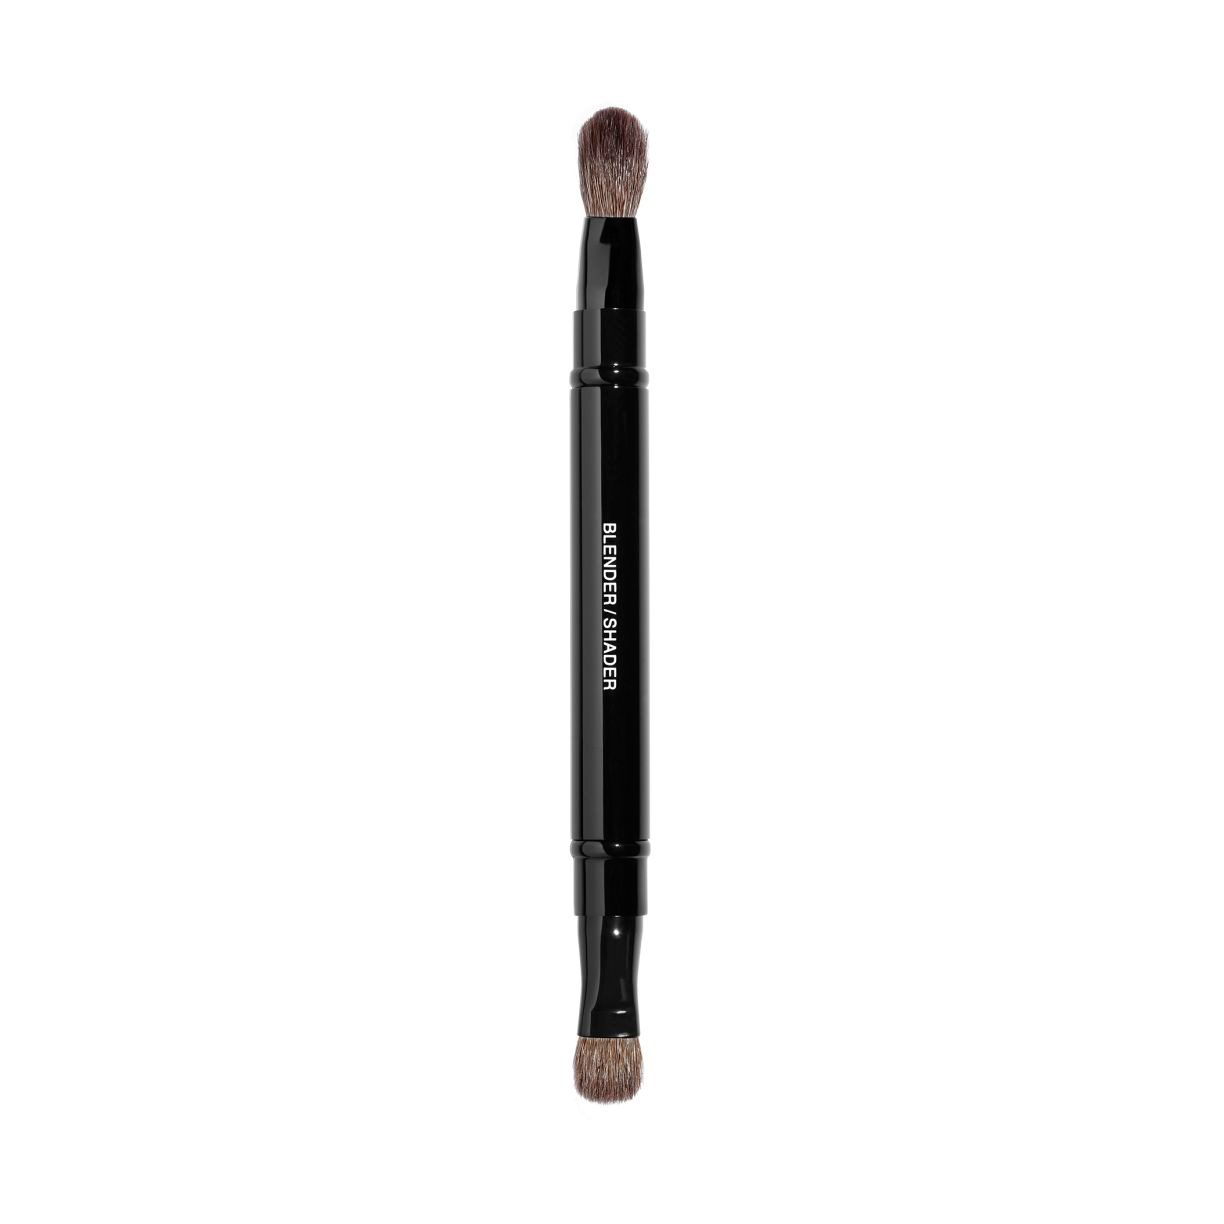 PINCEAU DUO PAUPIÈRES RÉTRACTABLE RETRACTABLE DUAL-TIP EYESHADOW BRUSH 1pce